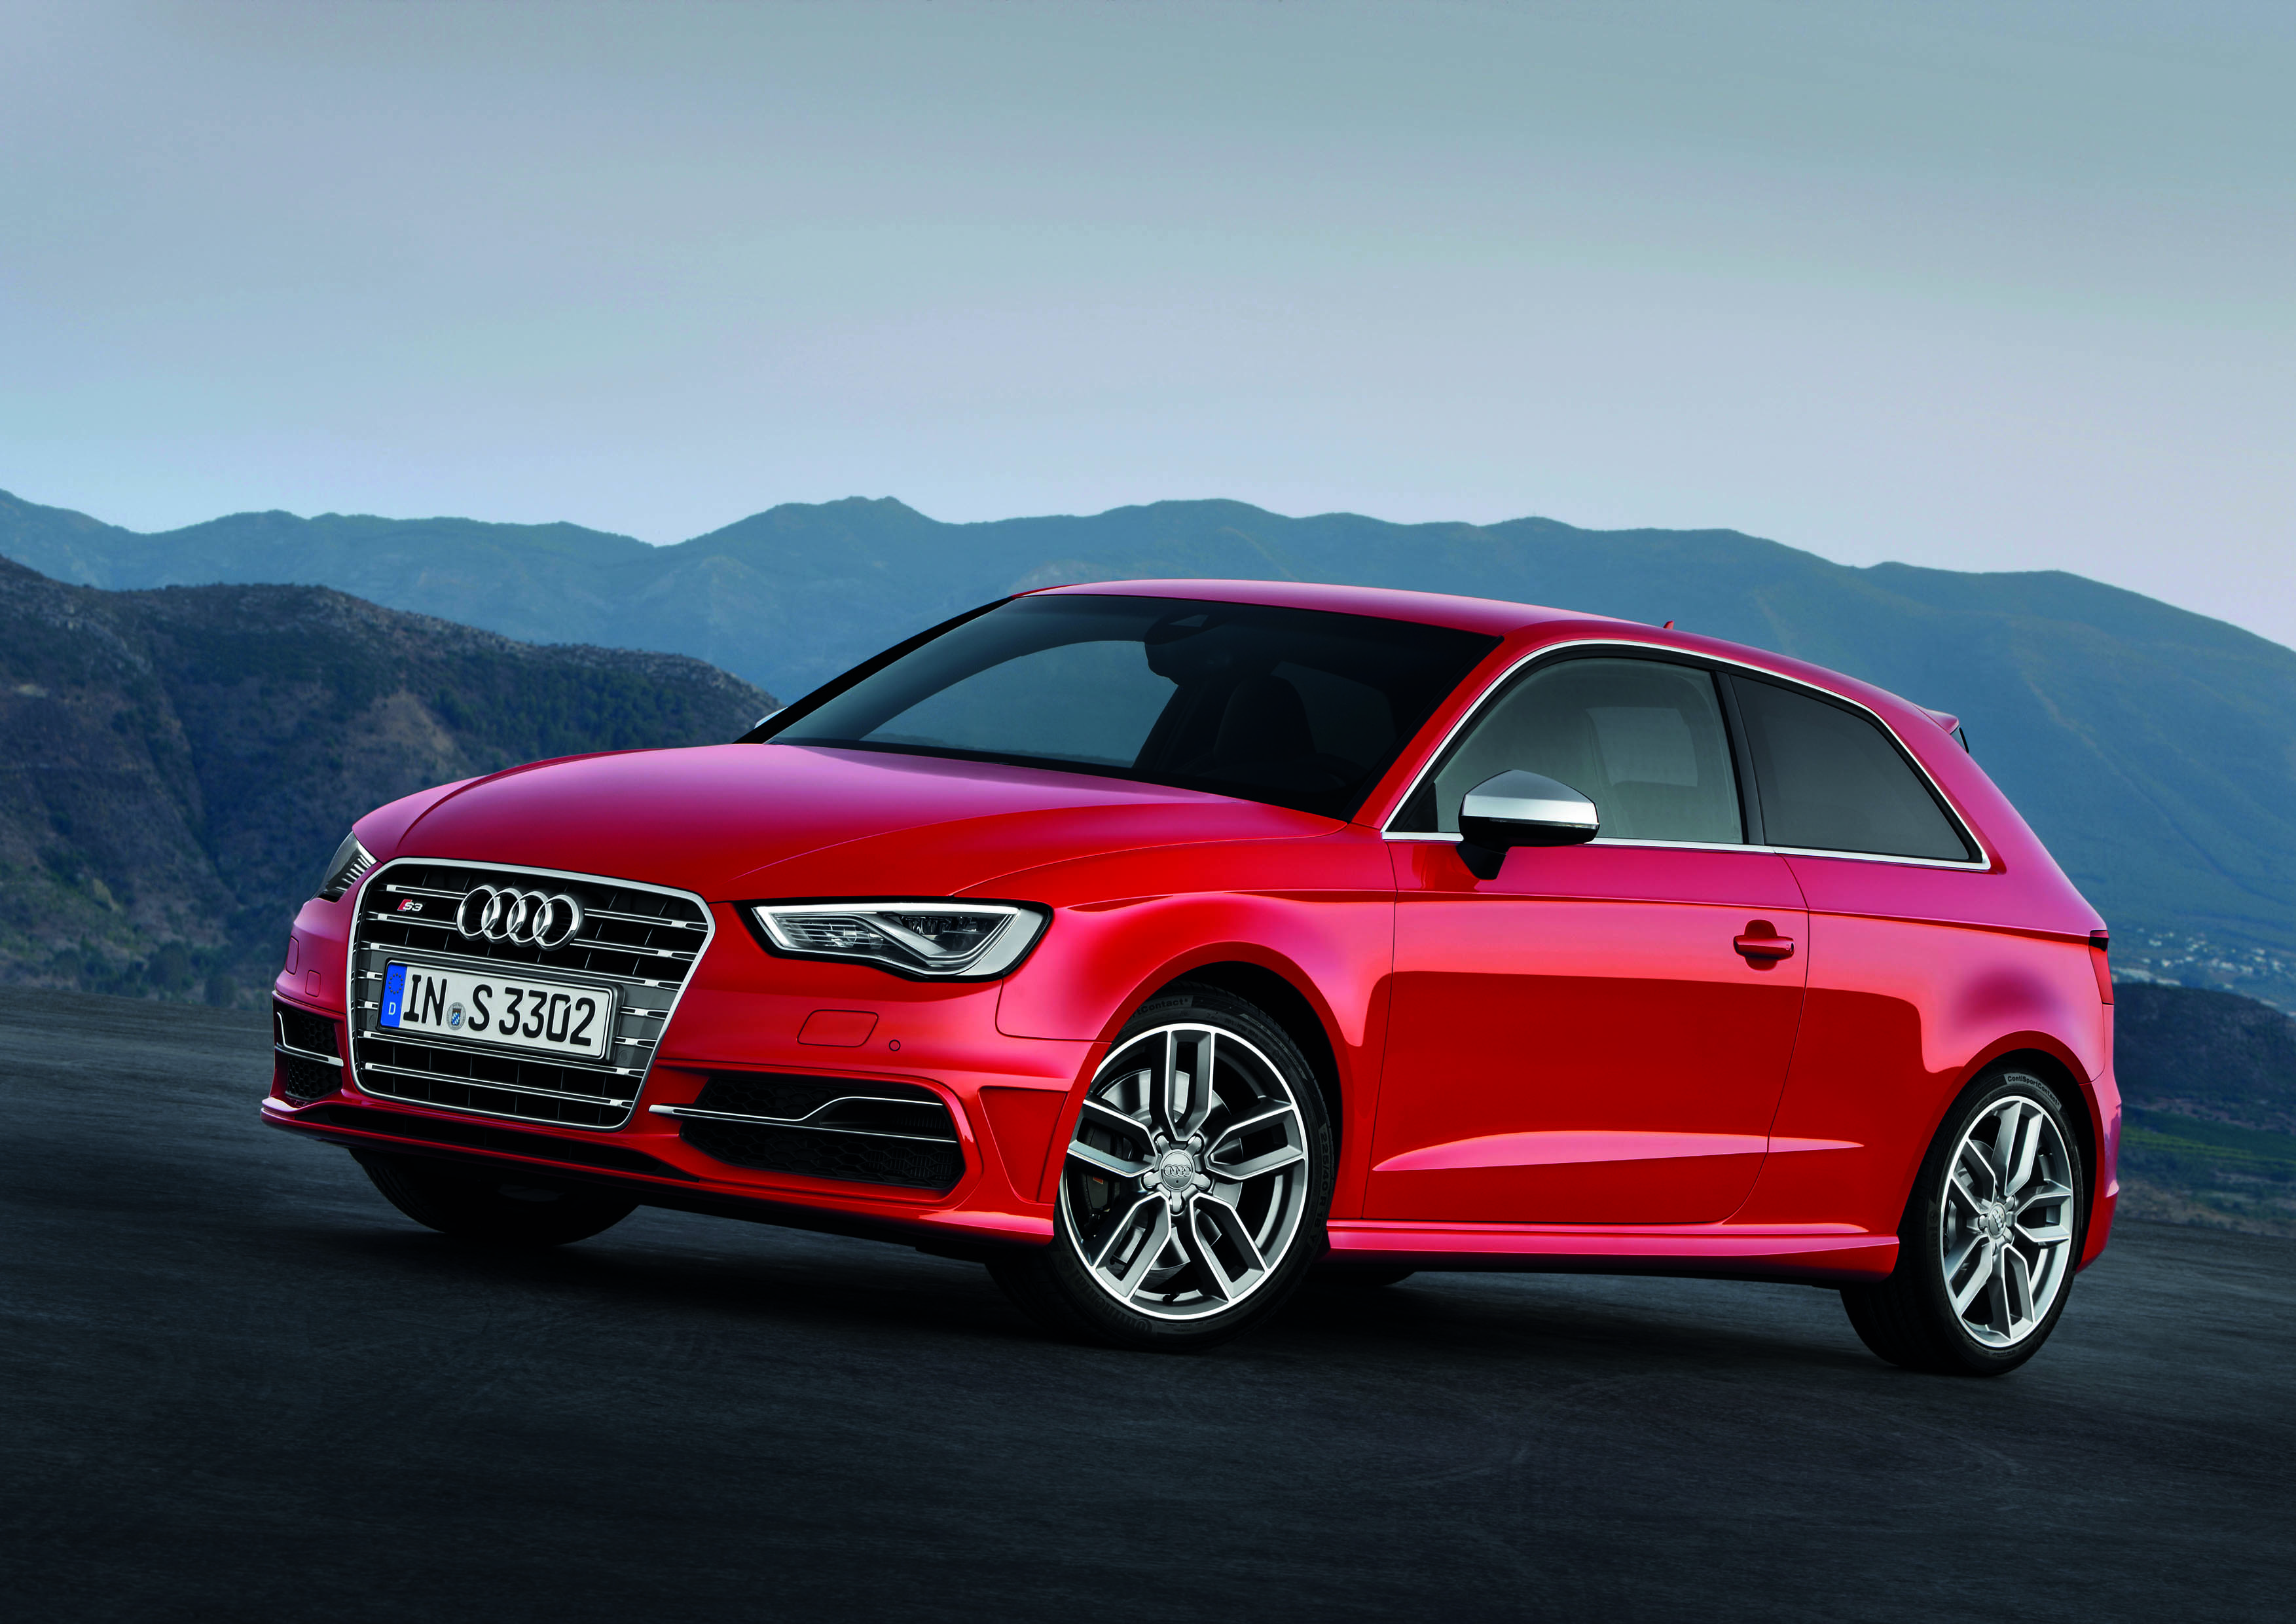 Audi S3 red #2